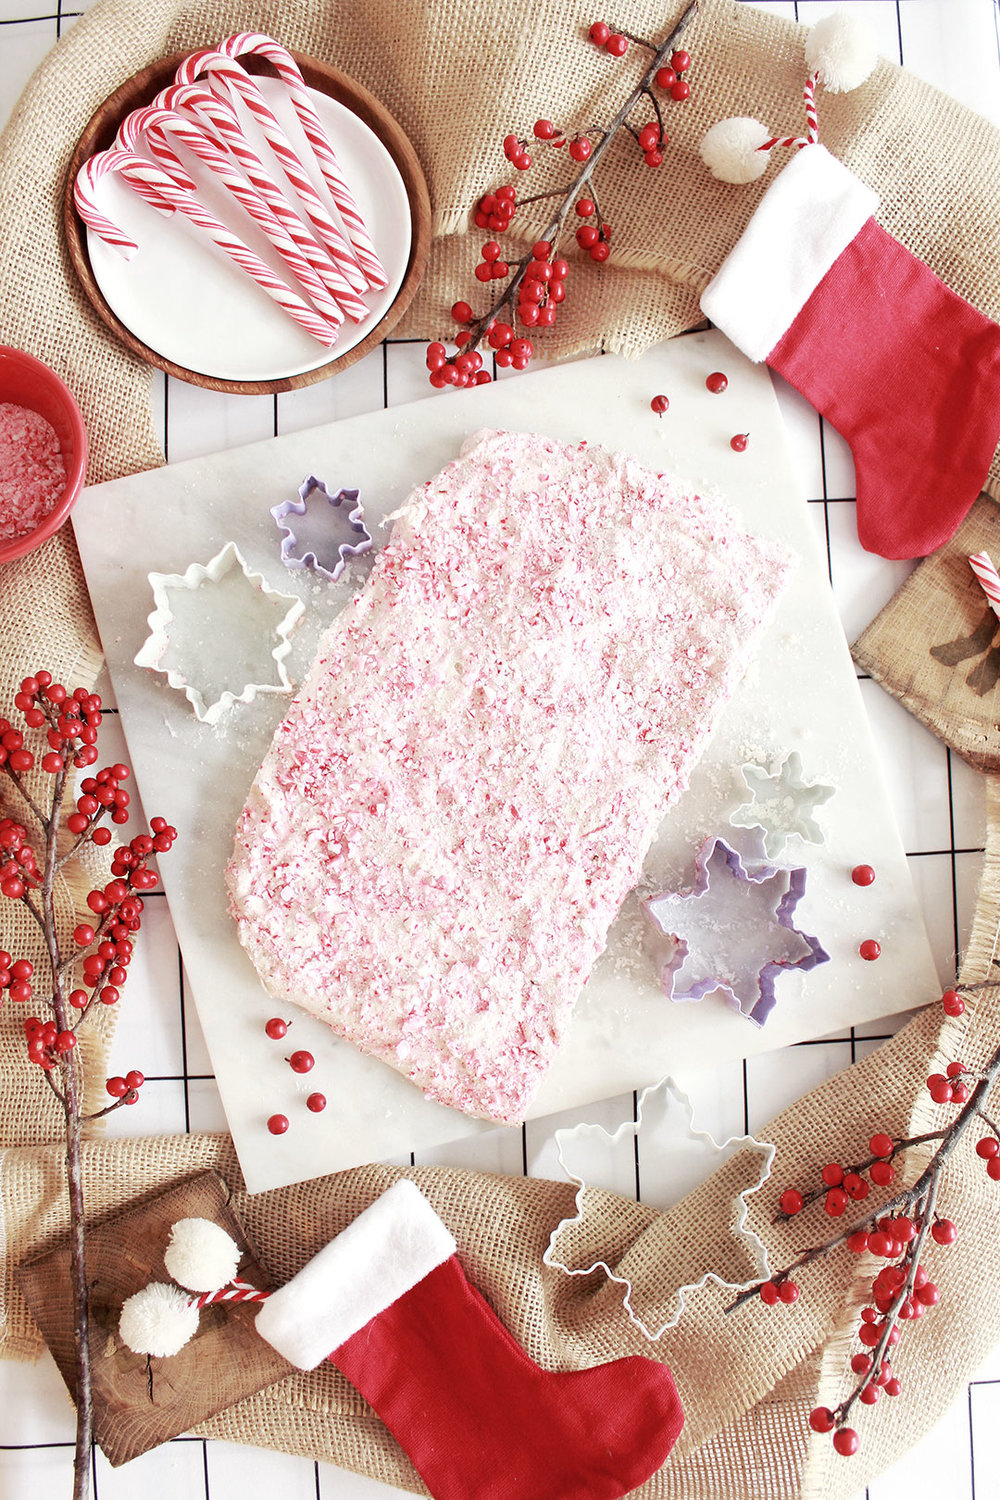 STEP 1 - To create the marshmallows:Grease the baking sheet and generously dust powdered sugar over the top. Set aside.In a mixing bowl, sprinkle the gelatin powder packets over 1/3 cups of water. Let it soften, and set aside.In a medium saucepan, combine 1/3 cups water, 1 cup granulated sugar, 1 cup light corn syrup, and 1/4 teaspoon salt. Bring to a boil over medium-high heat for about a minute, and then turn off.Take the saucepan mixture and slowly pour into the mixing bowl with gelatin while blending on the lowest speed. Slowly increase the speed to high for about ten minutes. The mixture should go from clear to white, and get increasingly thick and sticky.Add 1 teaspoon of peppermint extract and mix for another minute.Randomly add drops of red food coloring and mix just a few times to create red swirls throughout the marshmallow mix.Wet your hands to minimize sticking, and pour the mix into the baking sheet, creating a rectangular shape. Sprinkle the crushed candy canes all over the top of the marshmallow.Set aside pan for at least two hours.